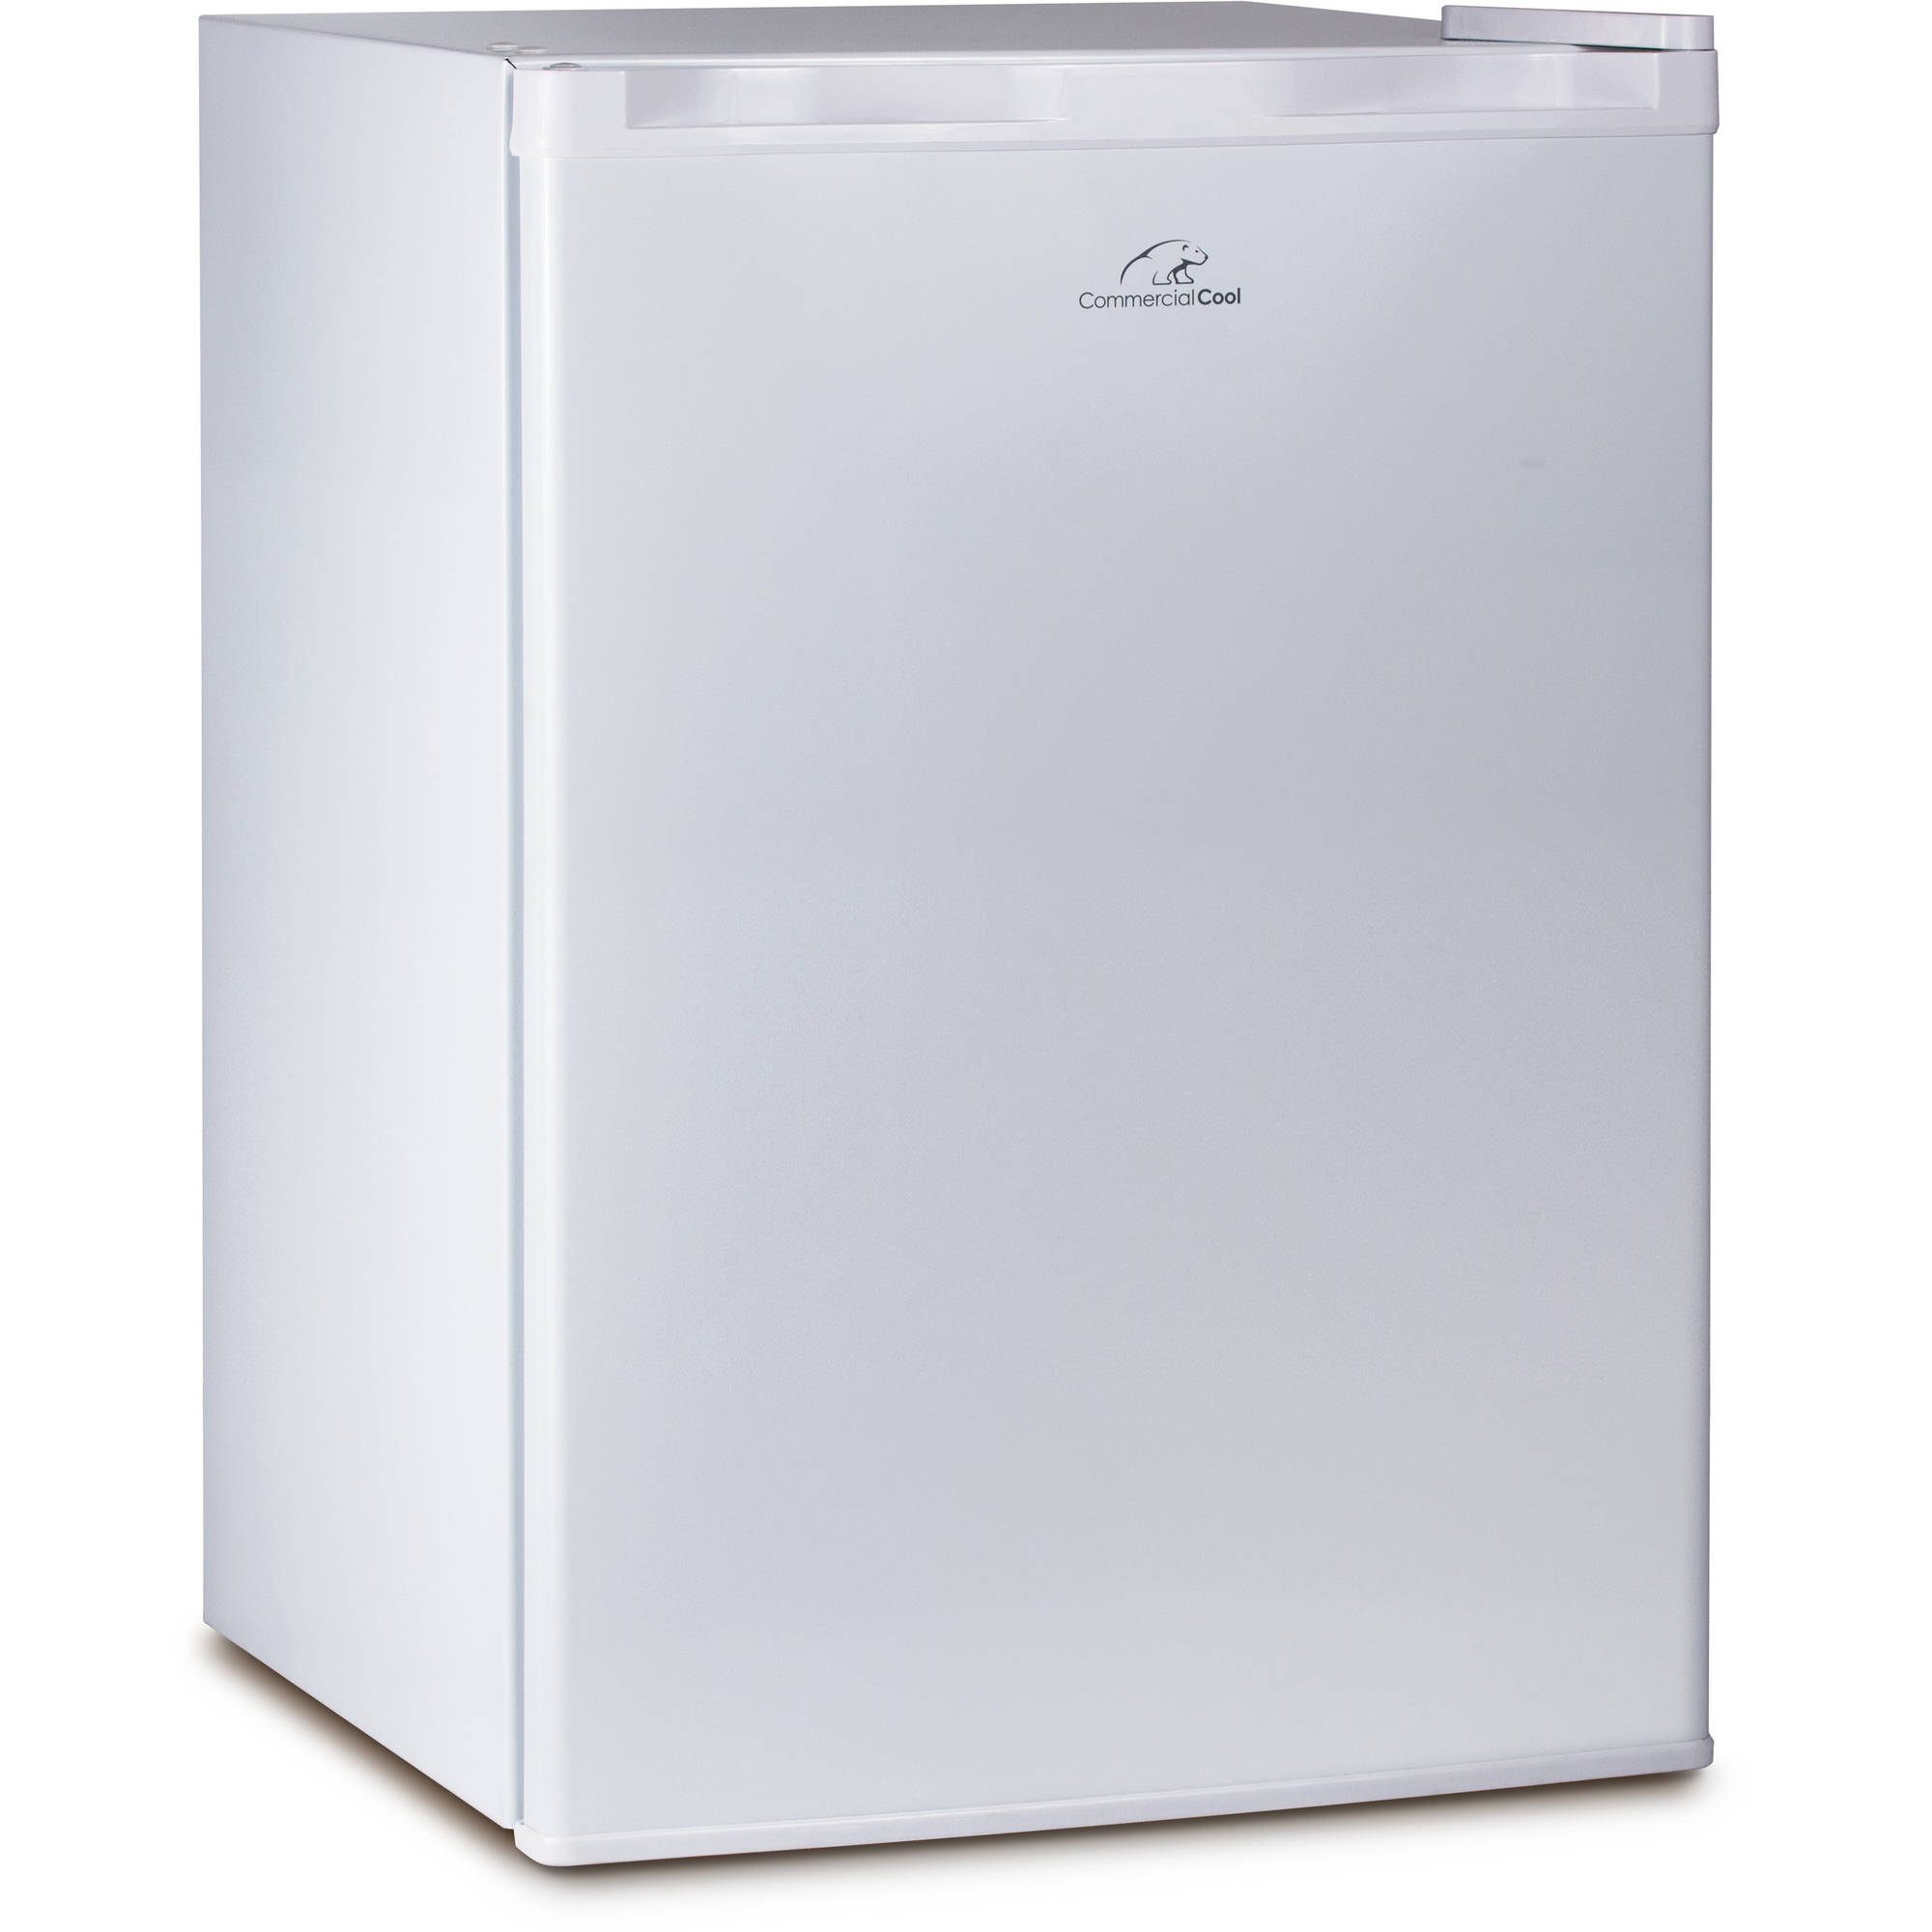 Commercial Cool 2.6 cu ft Refrigerator with Freezer, White